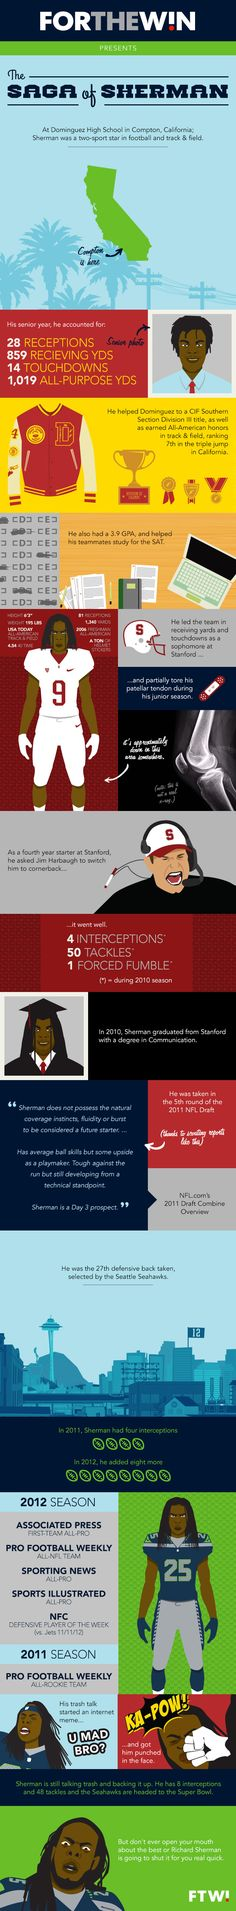 Love him or hate him, Richard Sherman has certainly provided us all with a lot to talk about.  The standout cornerback has managed to build a brand, create an image, generate publicity and address social issues using sport as his platform.  I saw this infographic today that illustrates his path to the NFL and thought it offered an interesting perspective.